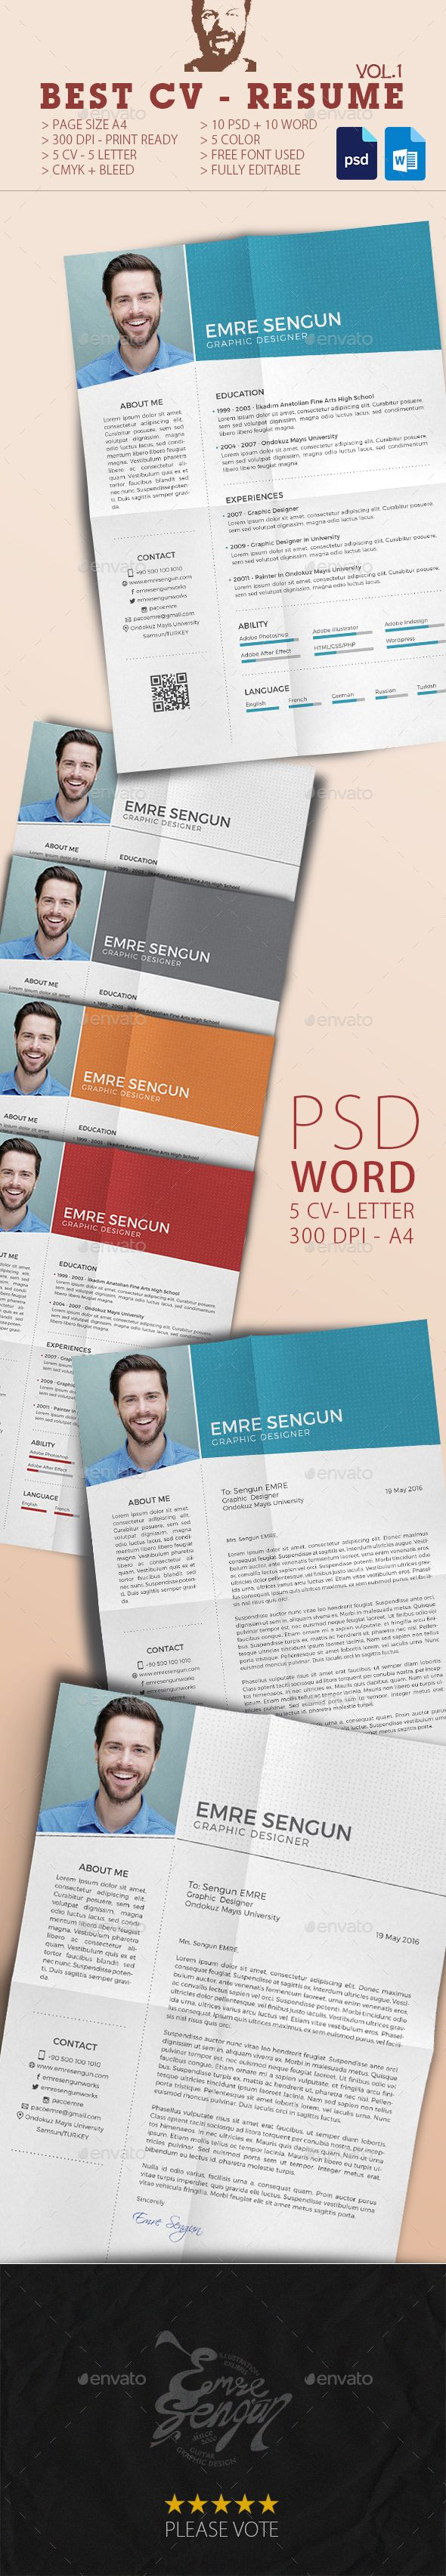 Cv Templates Design%0A Best CV Resume Design  Resume Template PSD  Download here  http